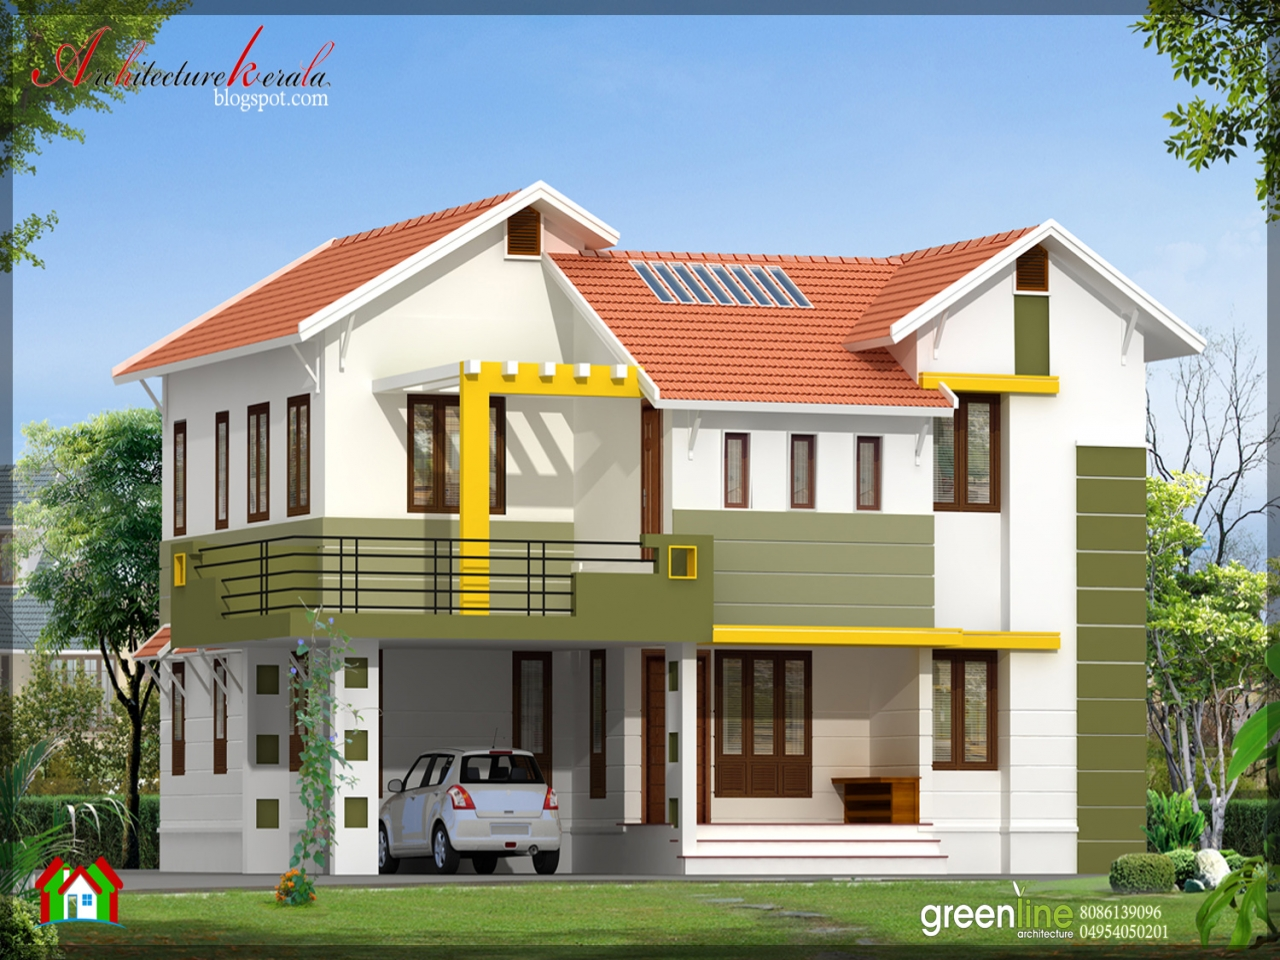 Simple modern house designs simple house design in india for Simple modern home plans